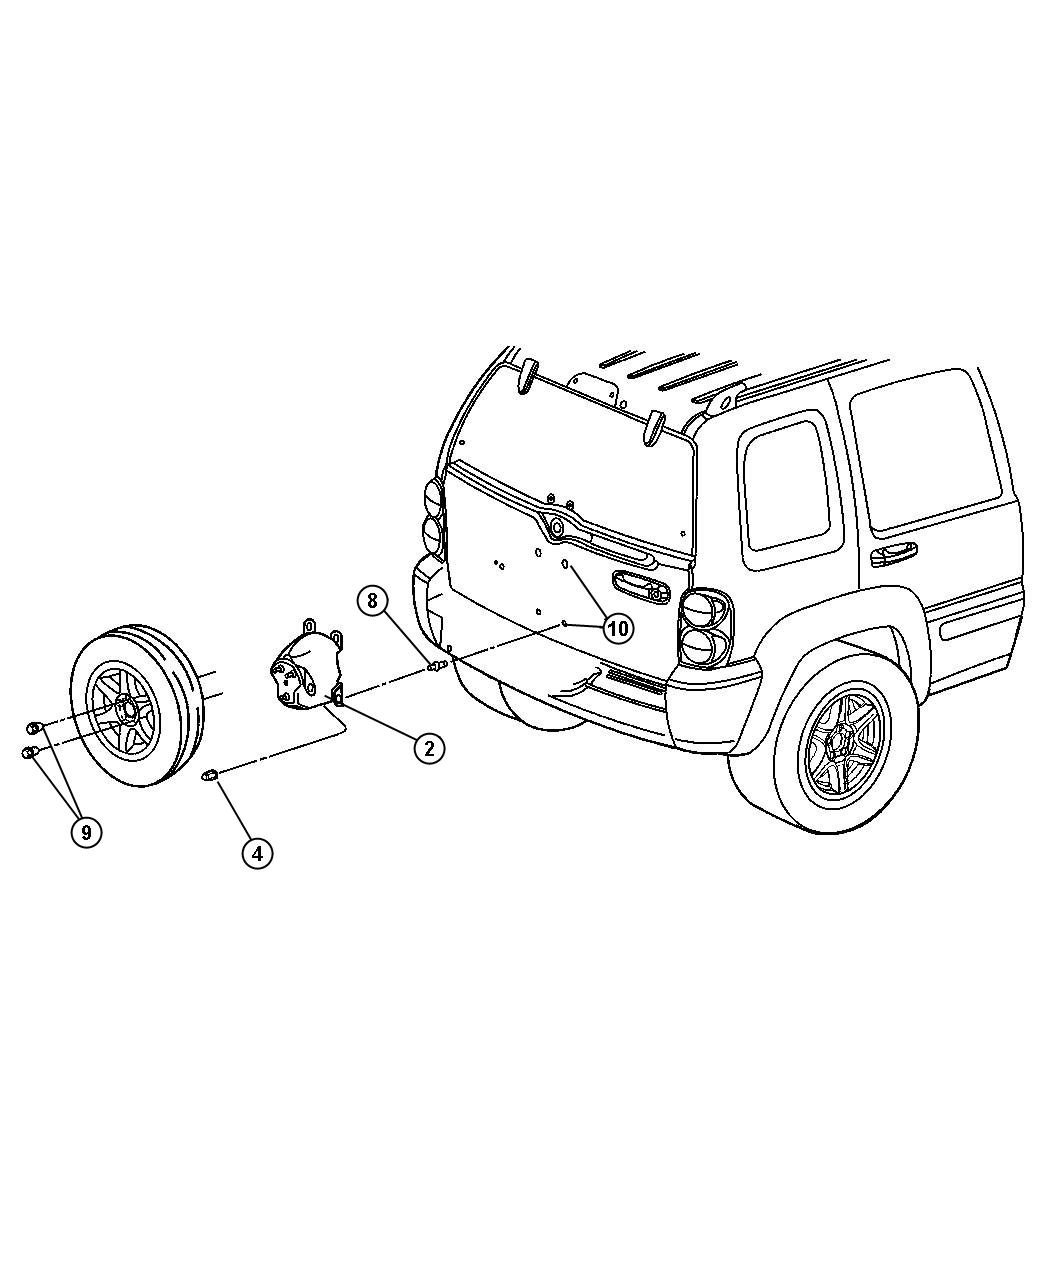 Jeep Liberty Stud Tbr Spare Tire Carrier Attaching